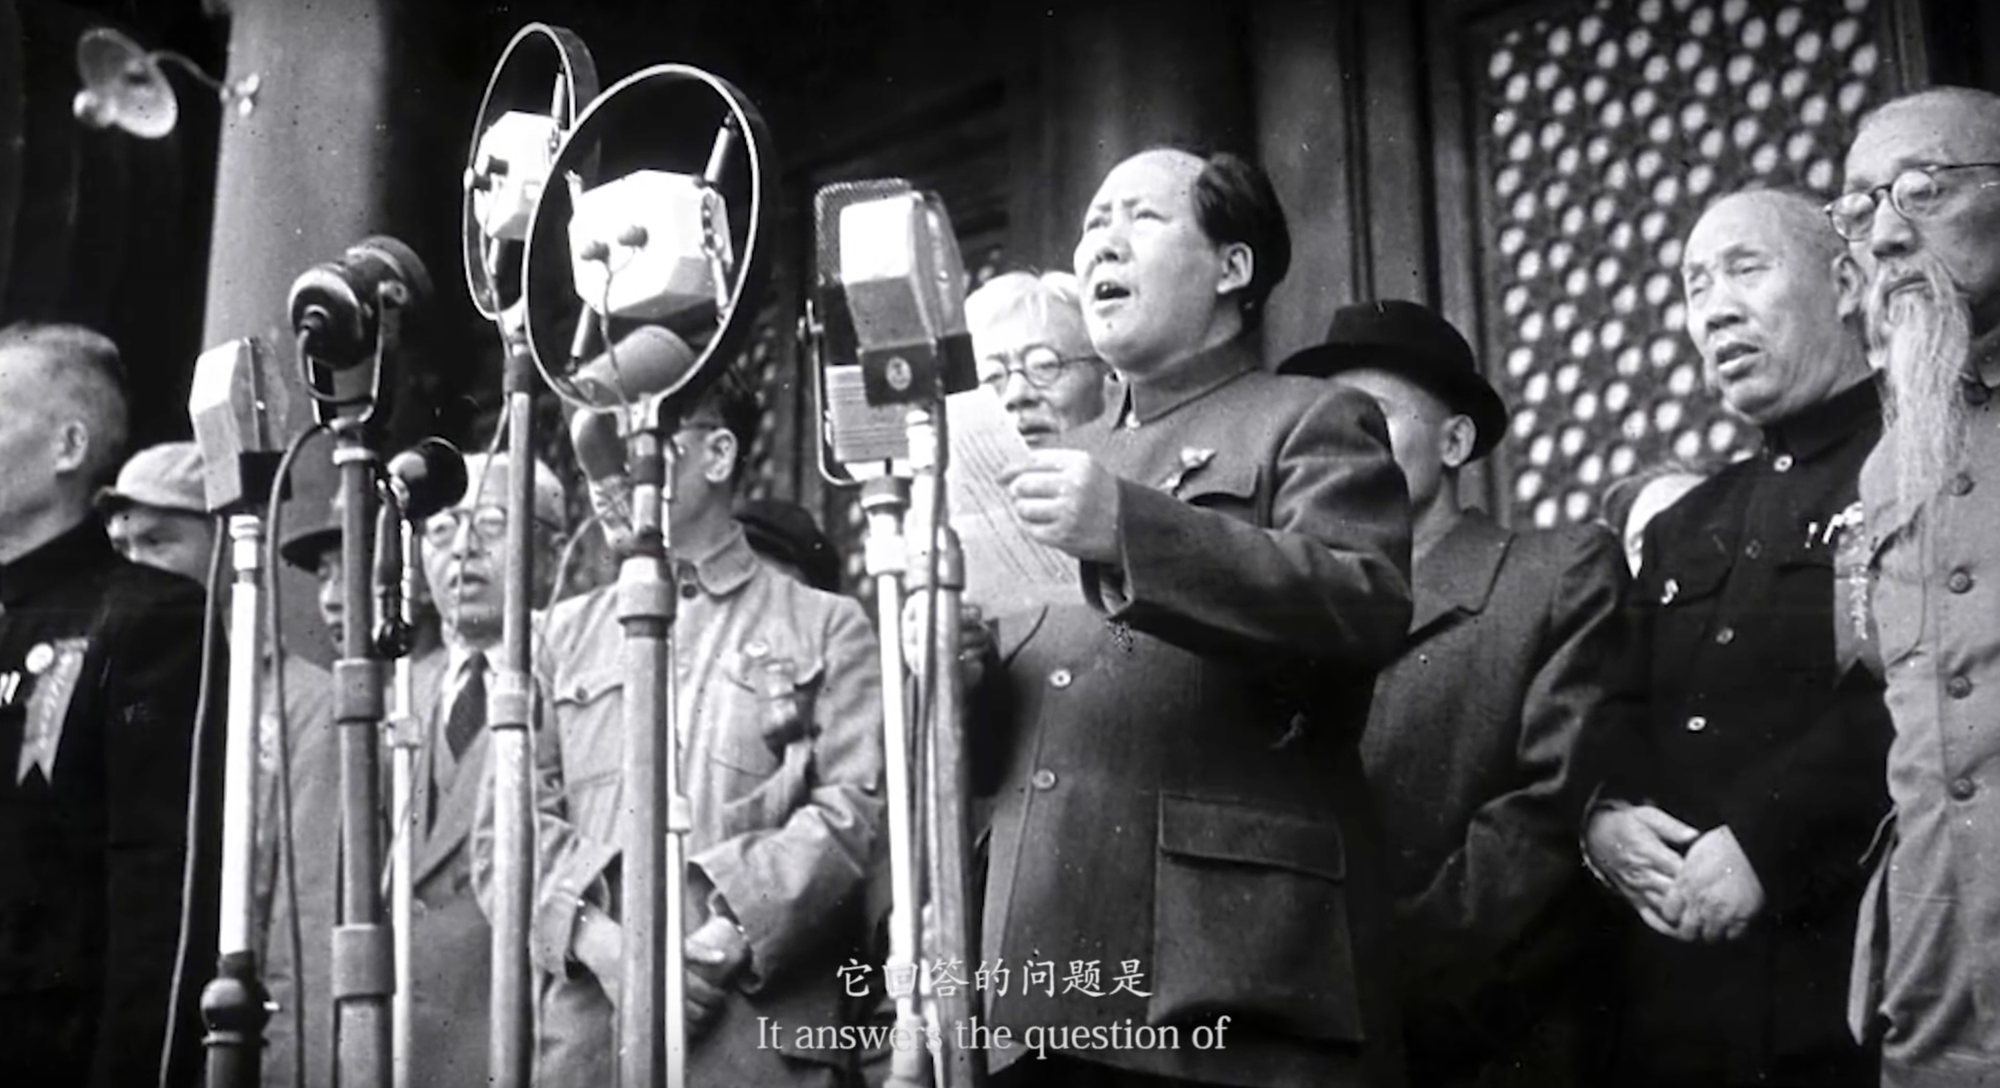 """Tshingua University's edX course """"Introduction to Mao Zedong Thought"""" has come under criticism for purportedly espousing Communist party propaganda. A screenshot from the an introductory video on the course's website shows the former leader of the People's Republic of China."""